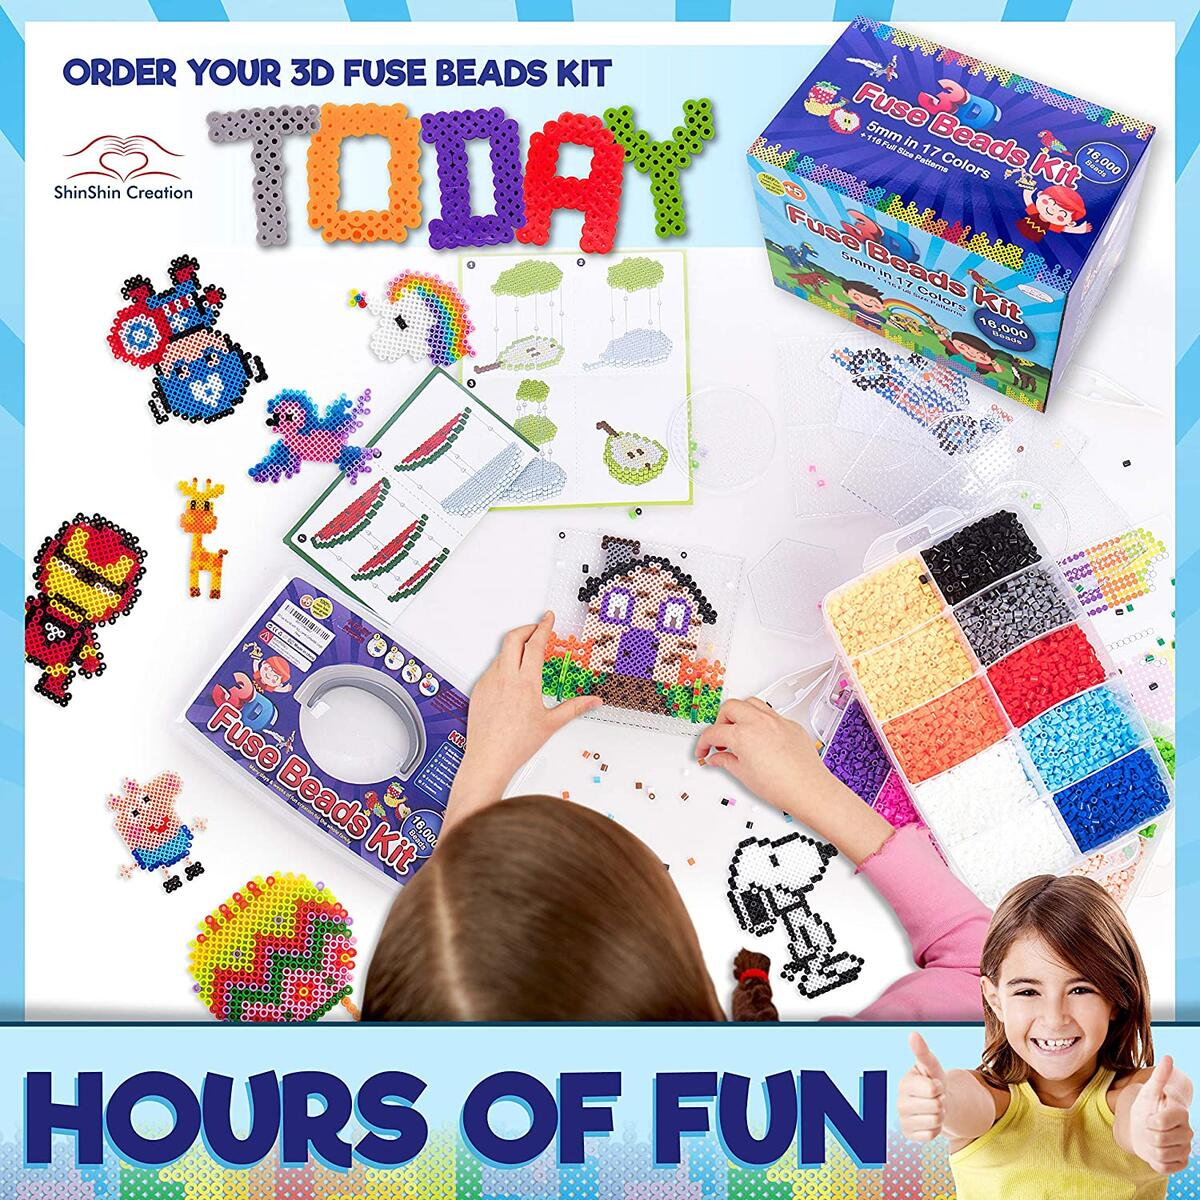 3D Fuse Bead Kit with 16,000 5MM Sorted Beads 36 Detailed 3D Patterns and Pegboards perler Compatible (Large)